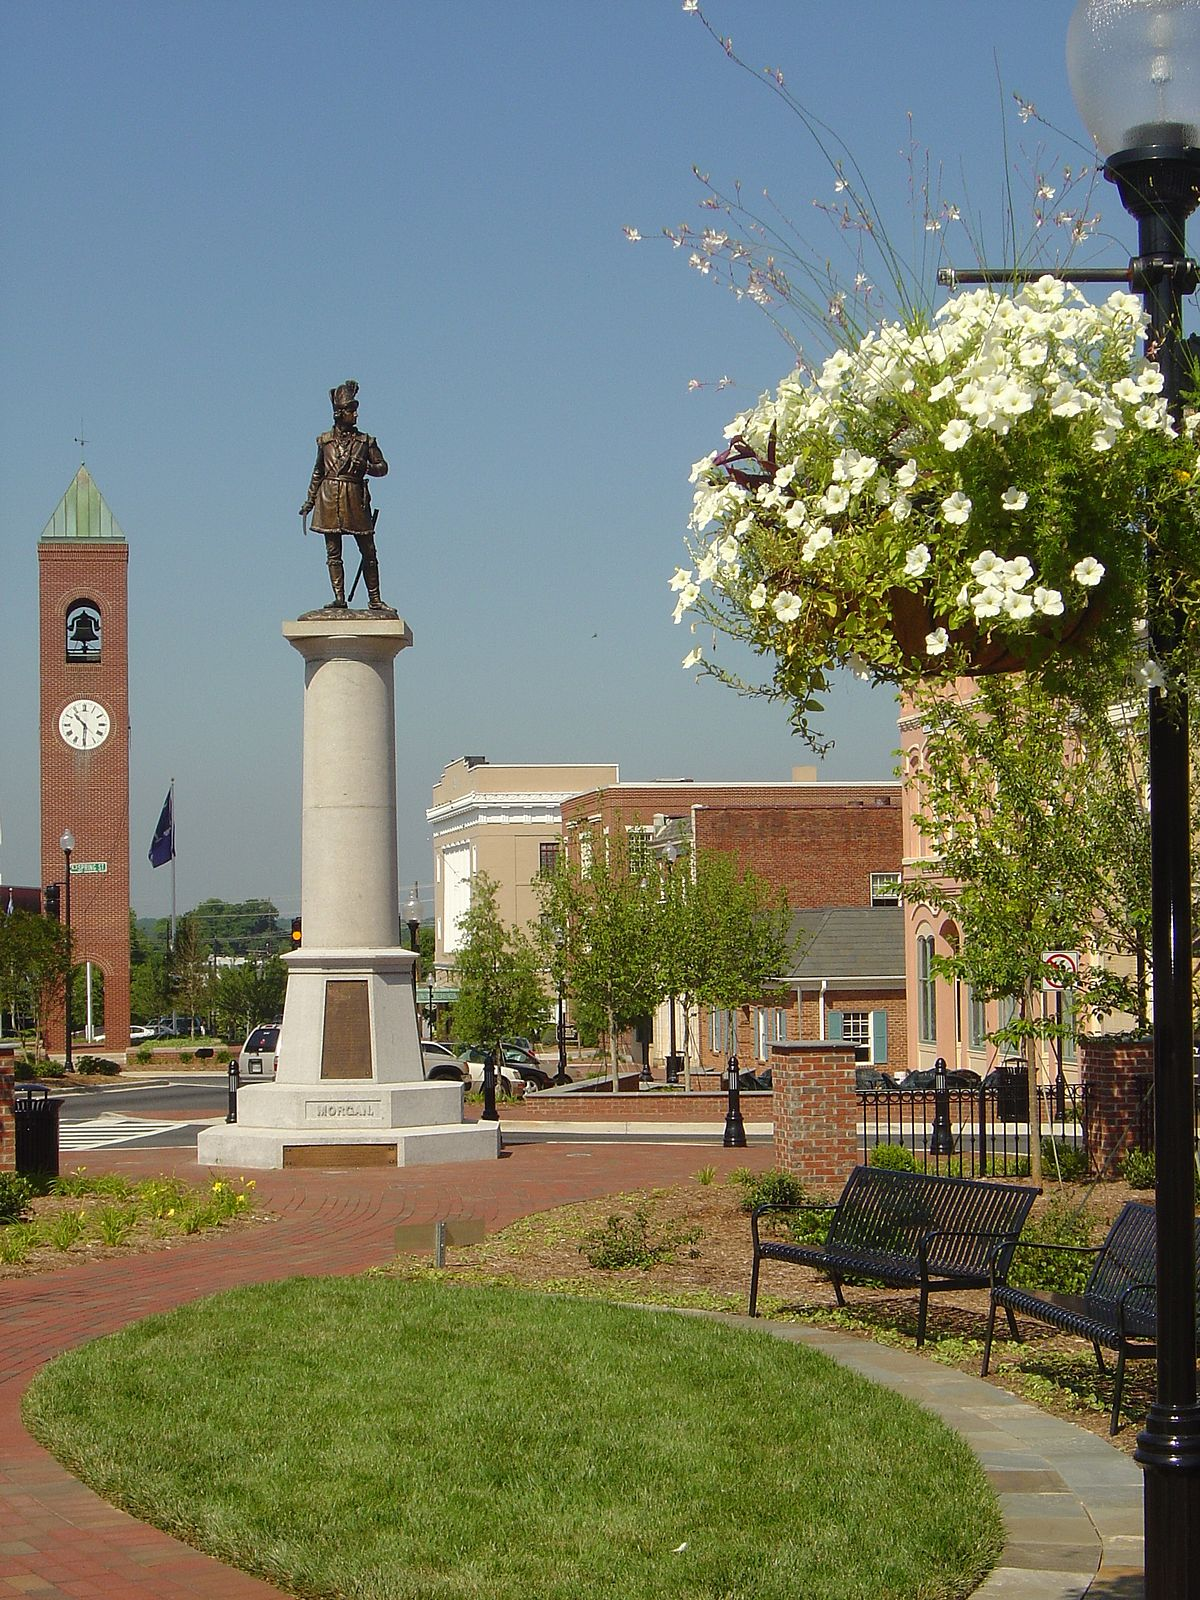 Spartanburg Travel Guide At Wikivoyage